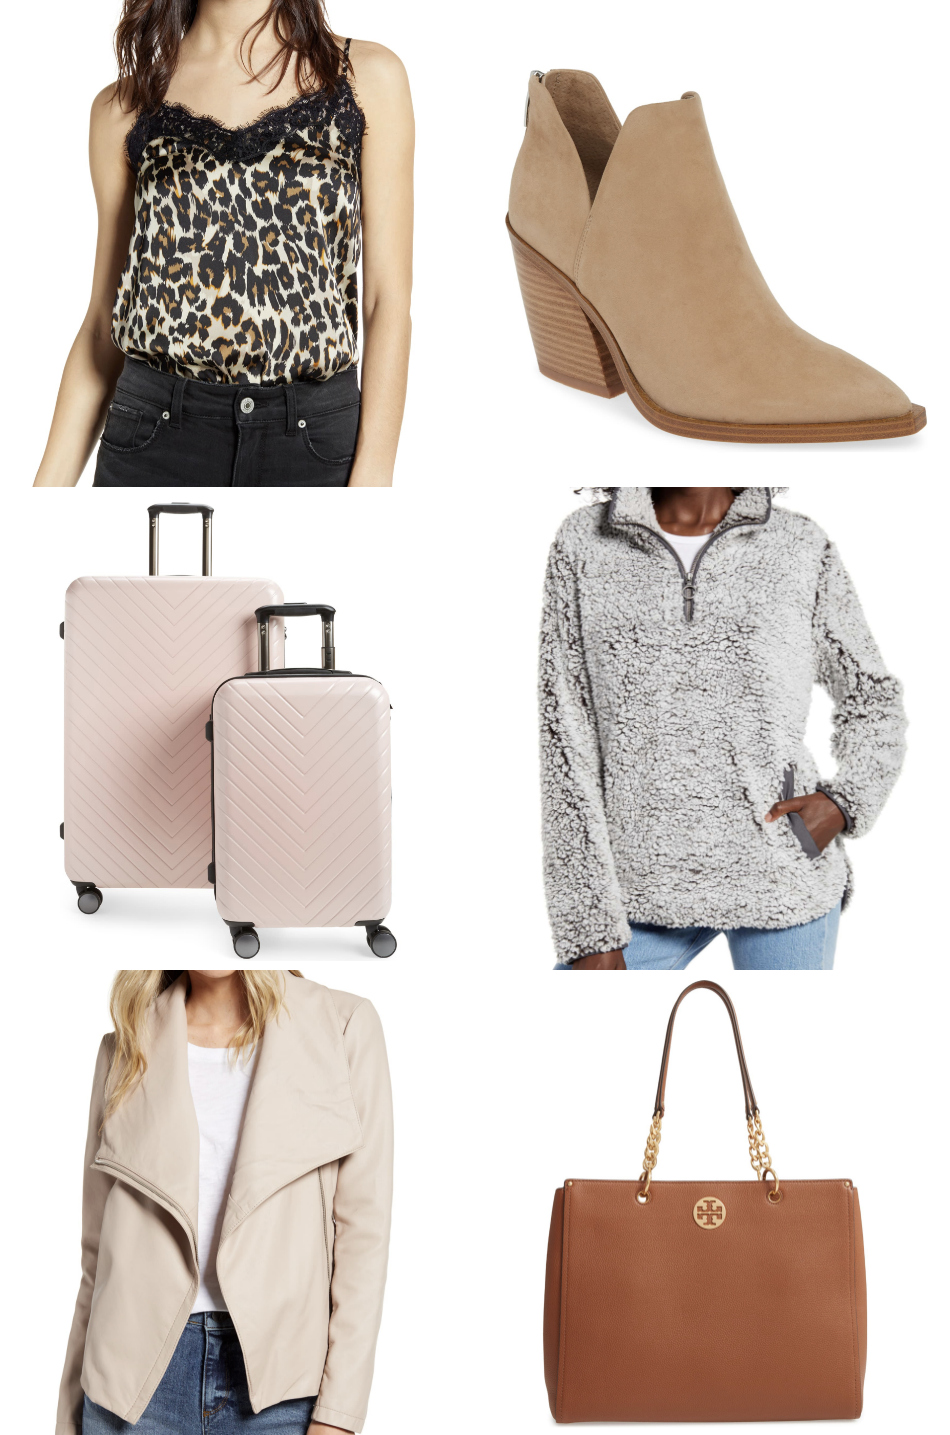 Mash Elle fashion style blogger | beauty blogger | Nordstrom sale | Nordstrom fashion | summer Style | tan boots|  leopard cami | blush luggage